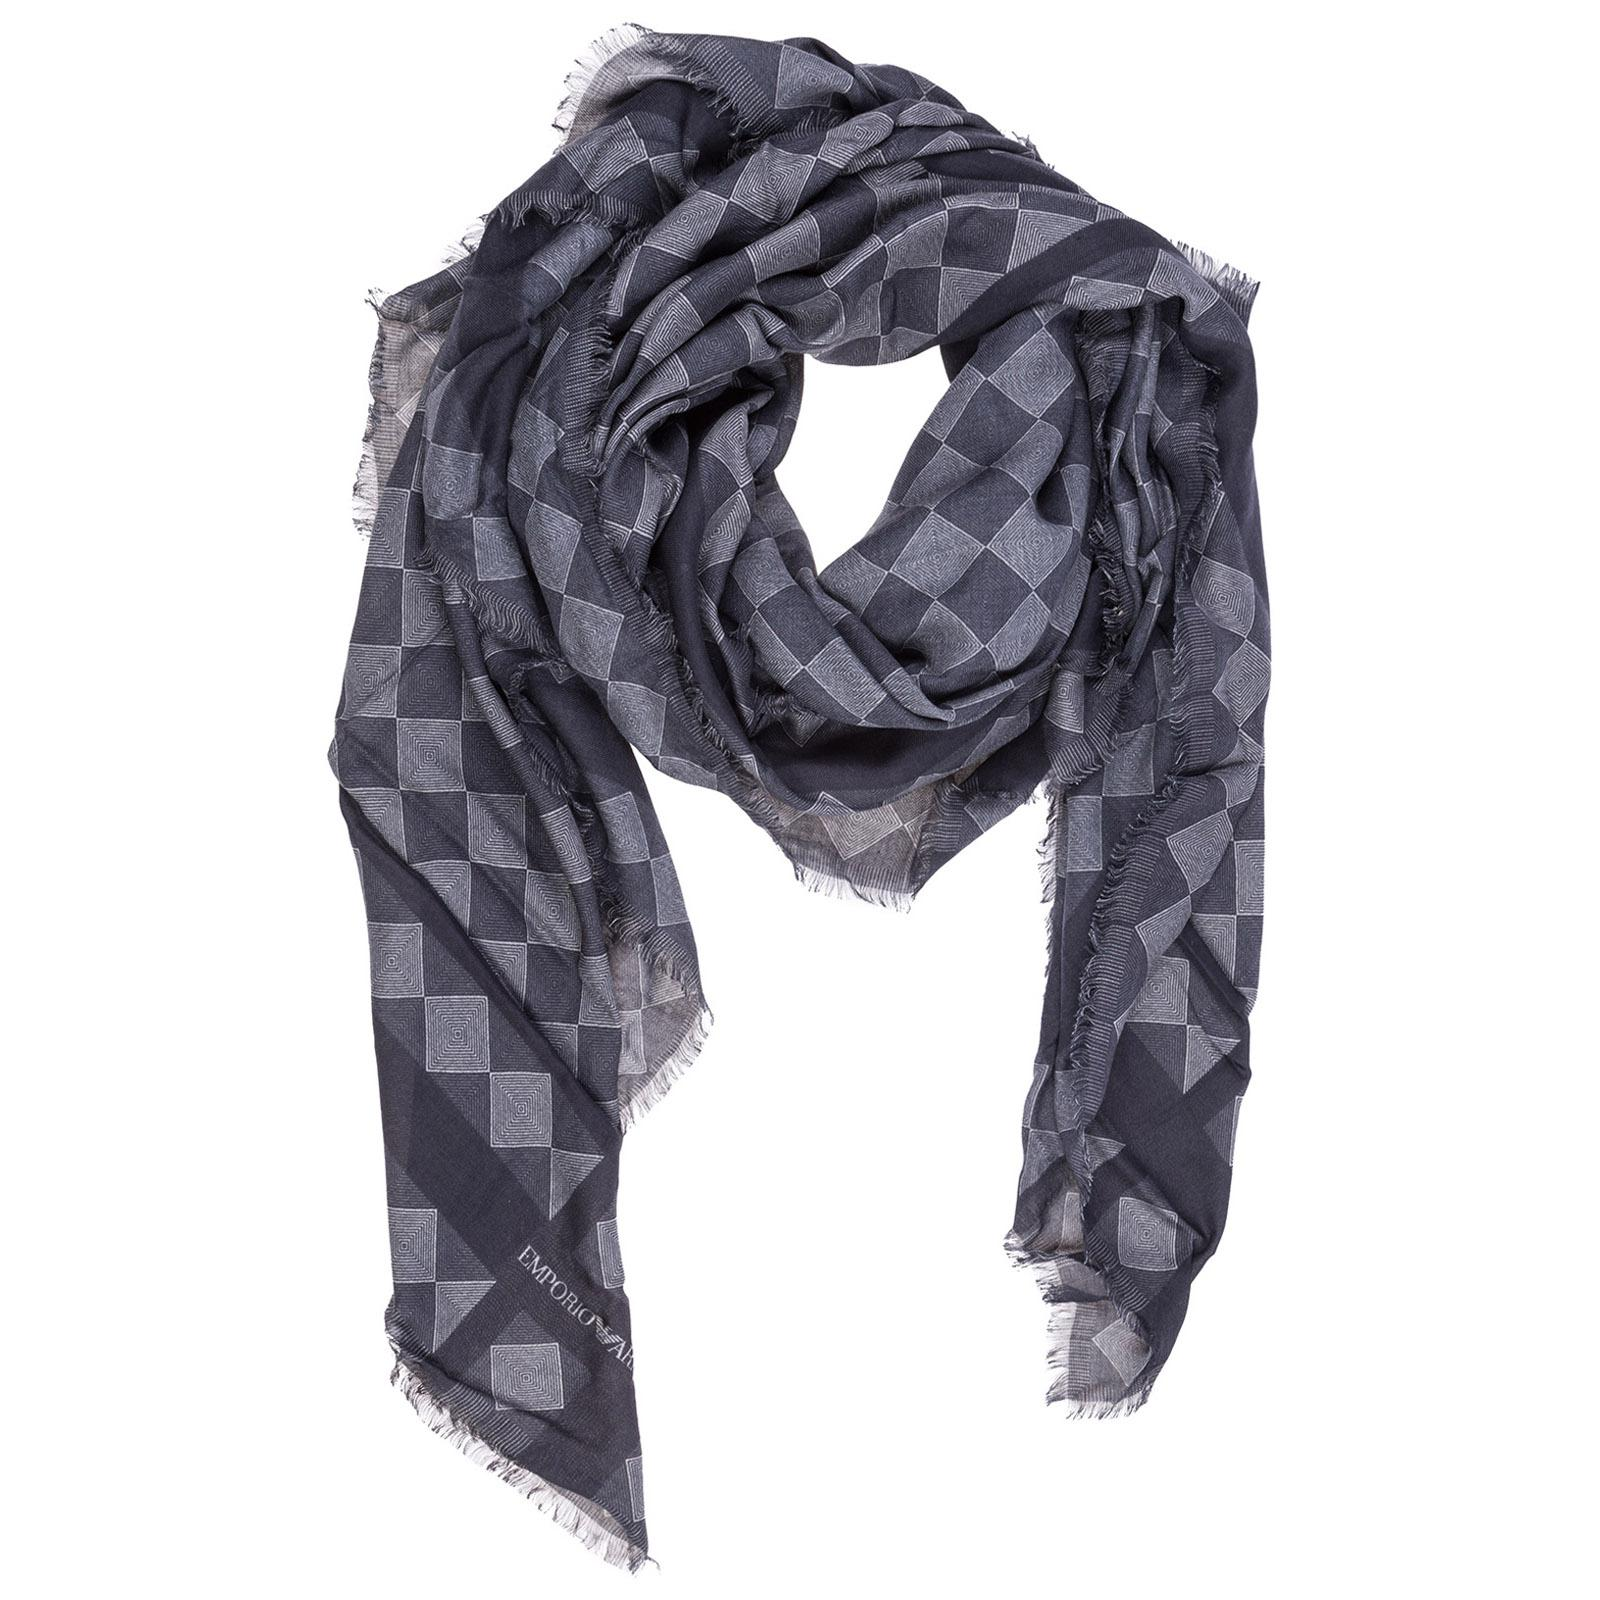 ab7e7988f8fd Lyst - Emporio Armani Foulard Scarf in Gray for Men